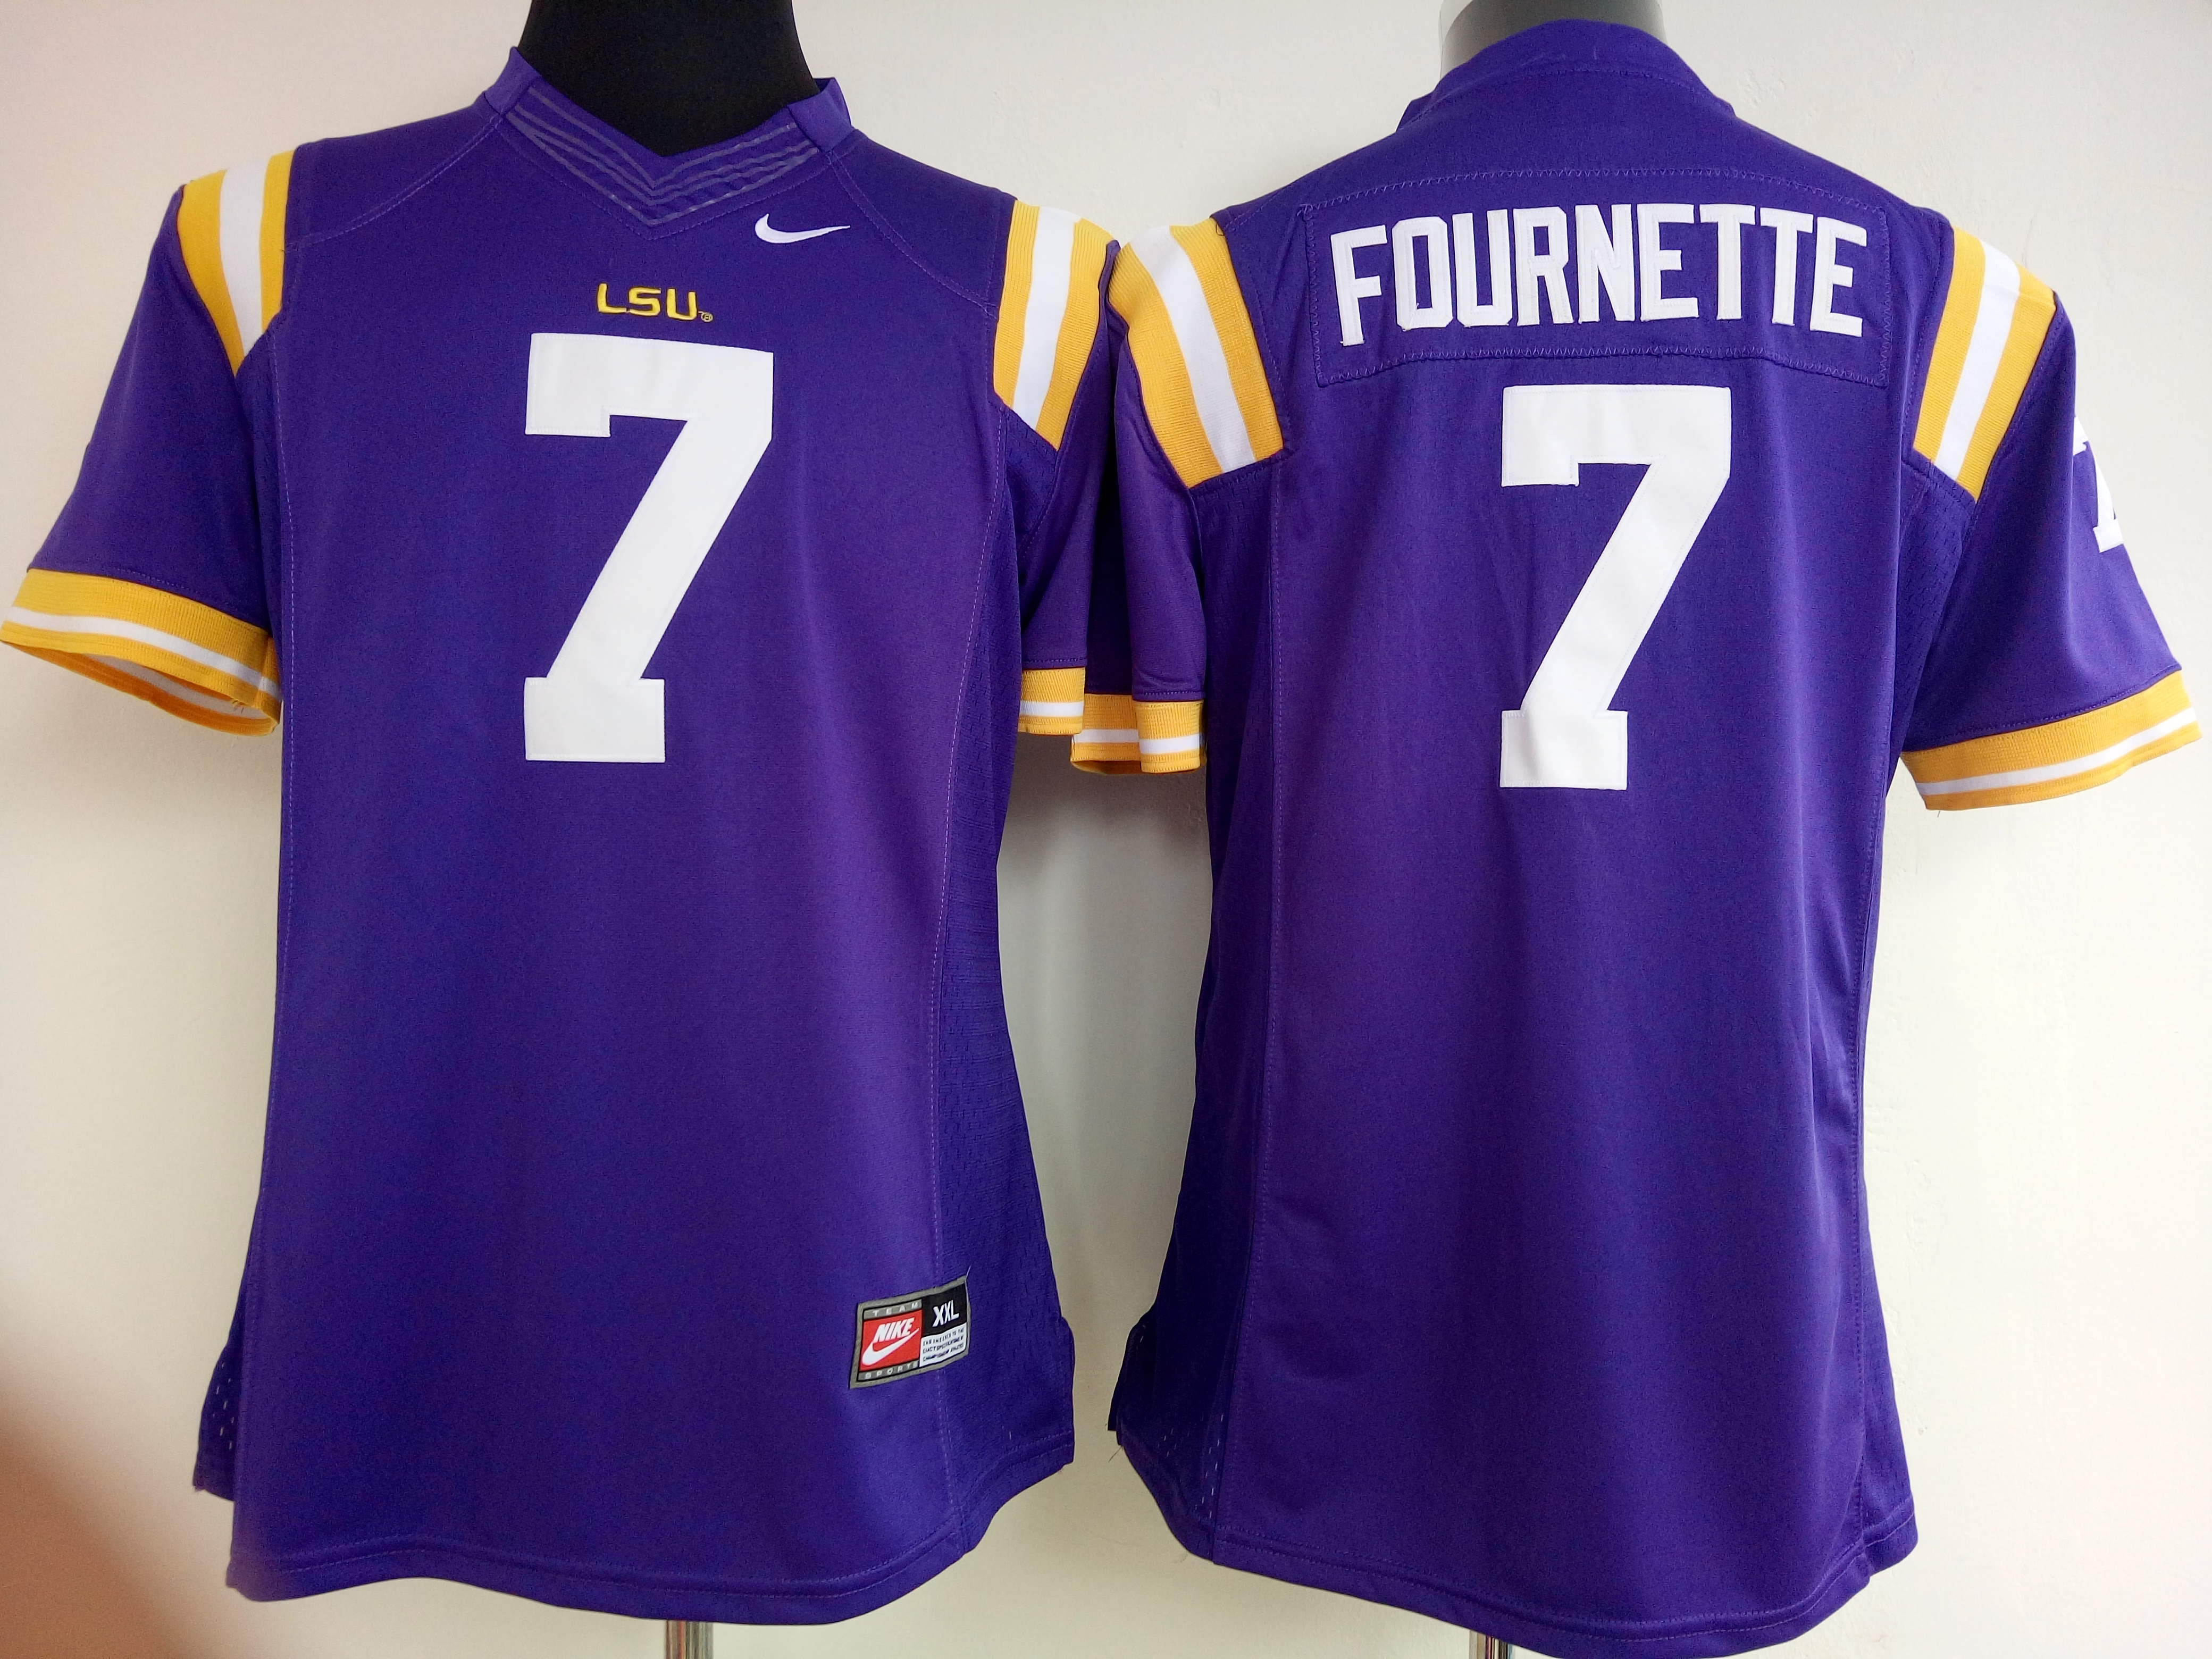 NCAA Womens LSU Tigers Purple 7 Fournette jerseys